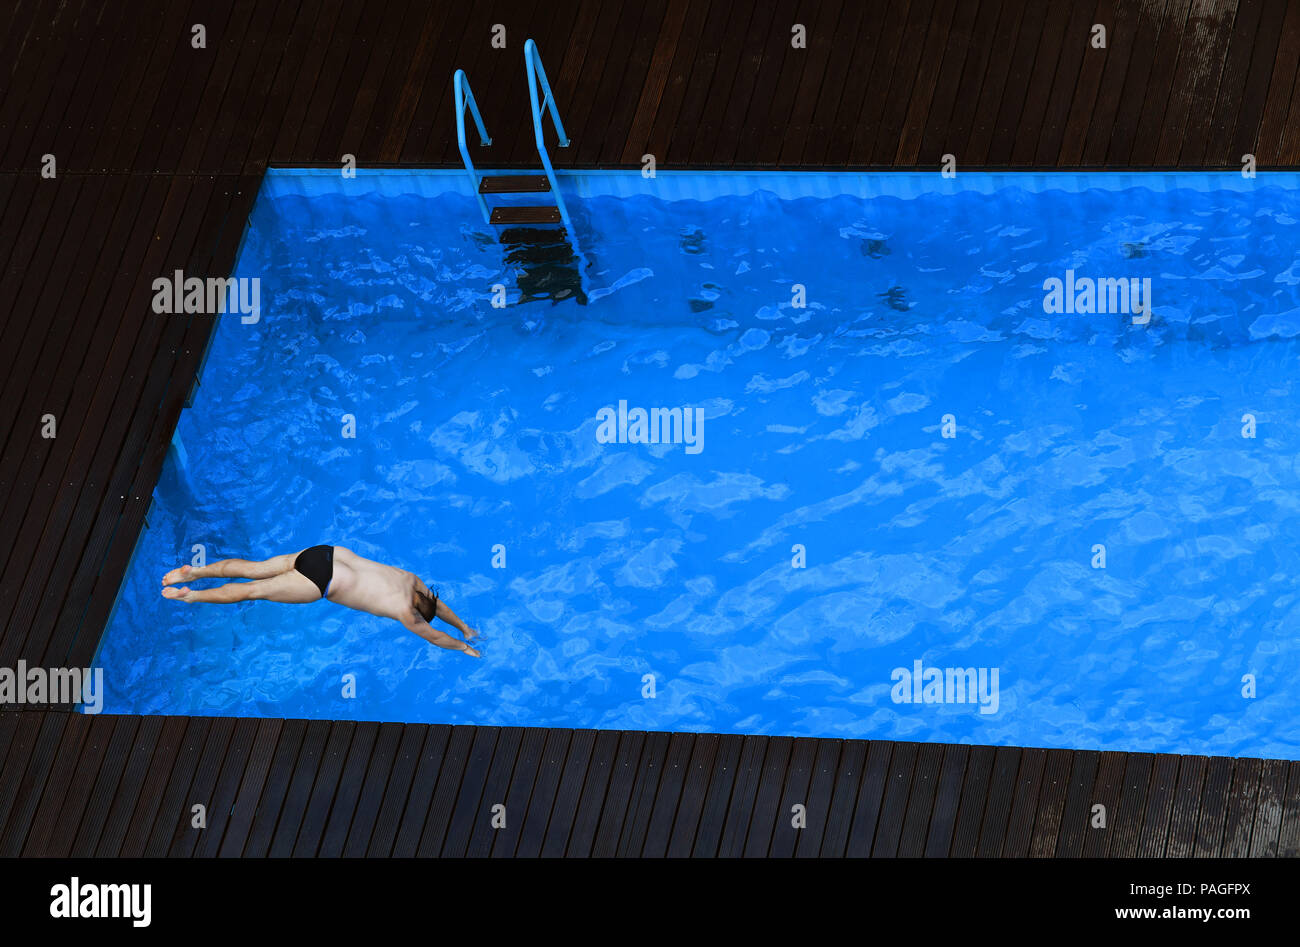 Swimming Pool Frankfurt Essen Germany 22nd July 2018 A Man Jumps Into The Works